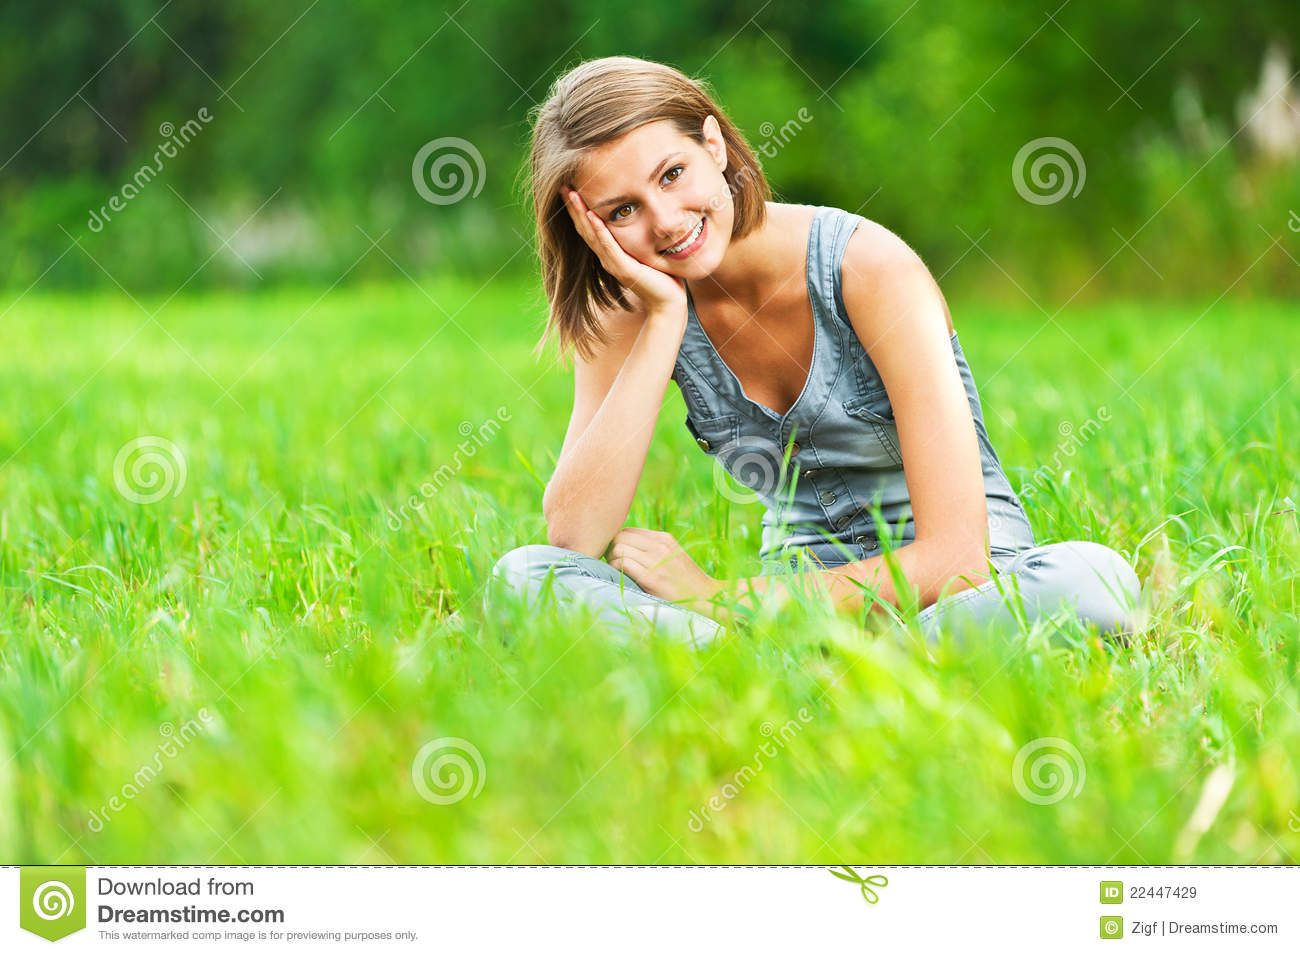 Download Woman Sitting On Green Meadow Stock Image - Image of cheerful, joyful: 22447429